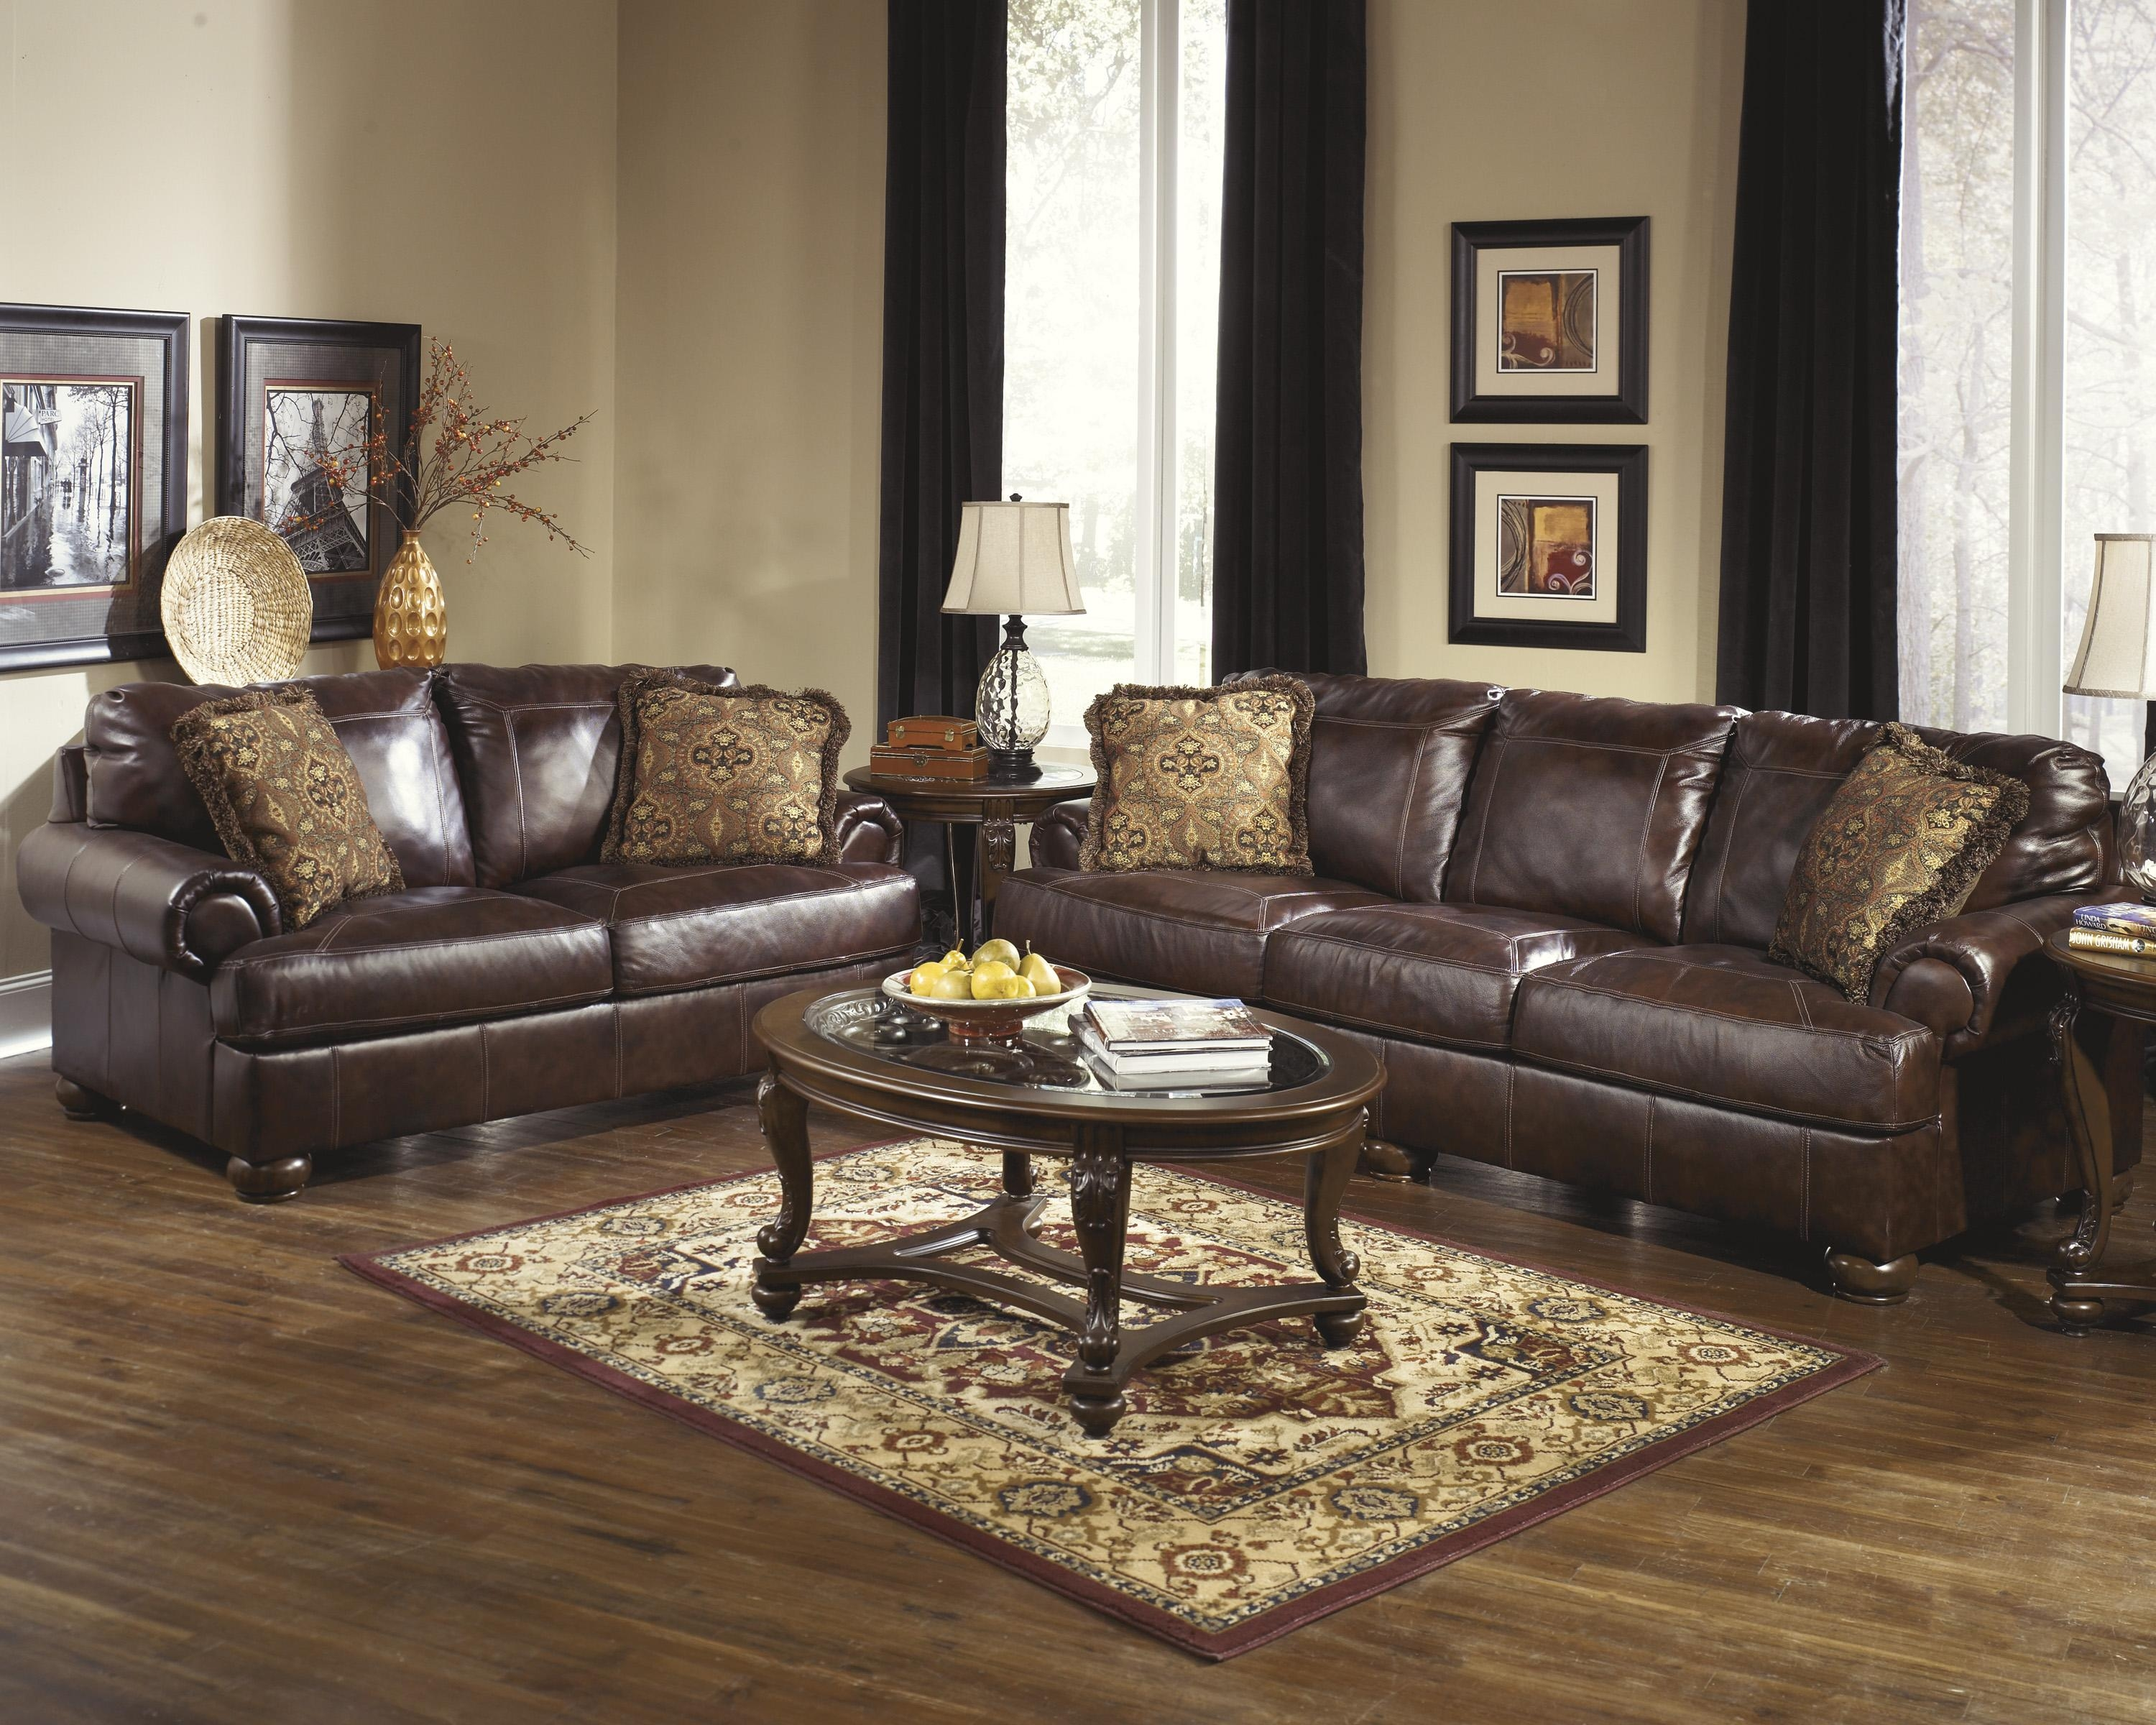 Cheap Ashley Furniture Living Room Sets Glendale, Ca – A Star For Living Room Sofas And Chairs (Image 2 of 20)